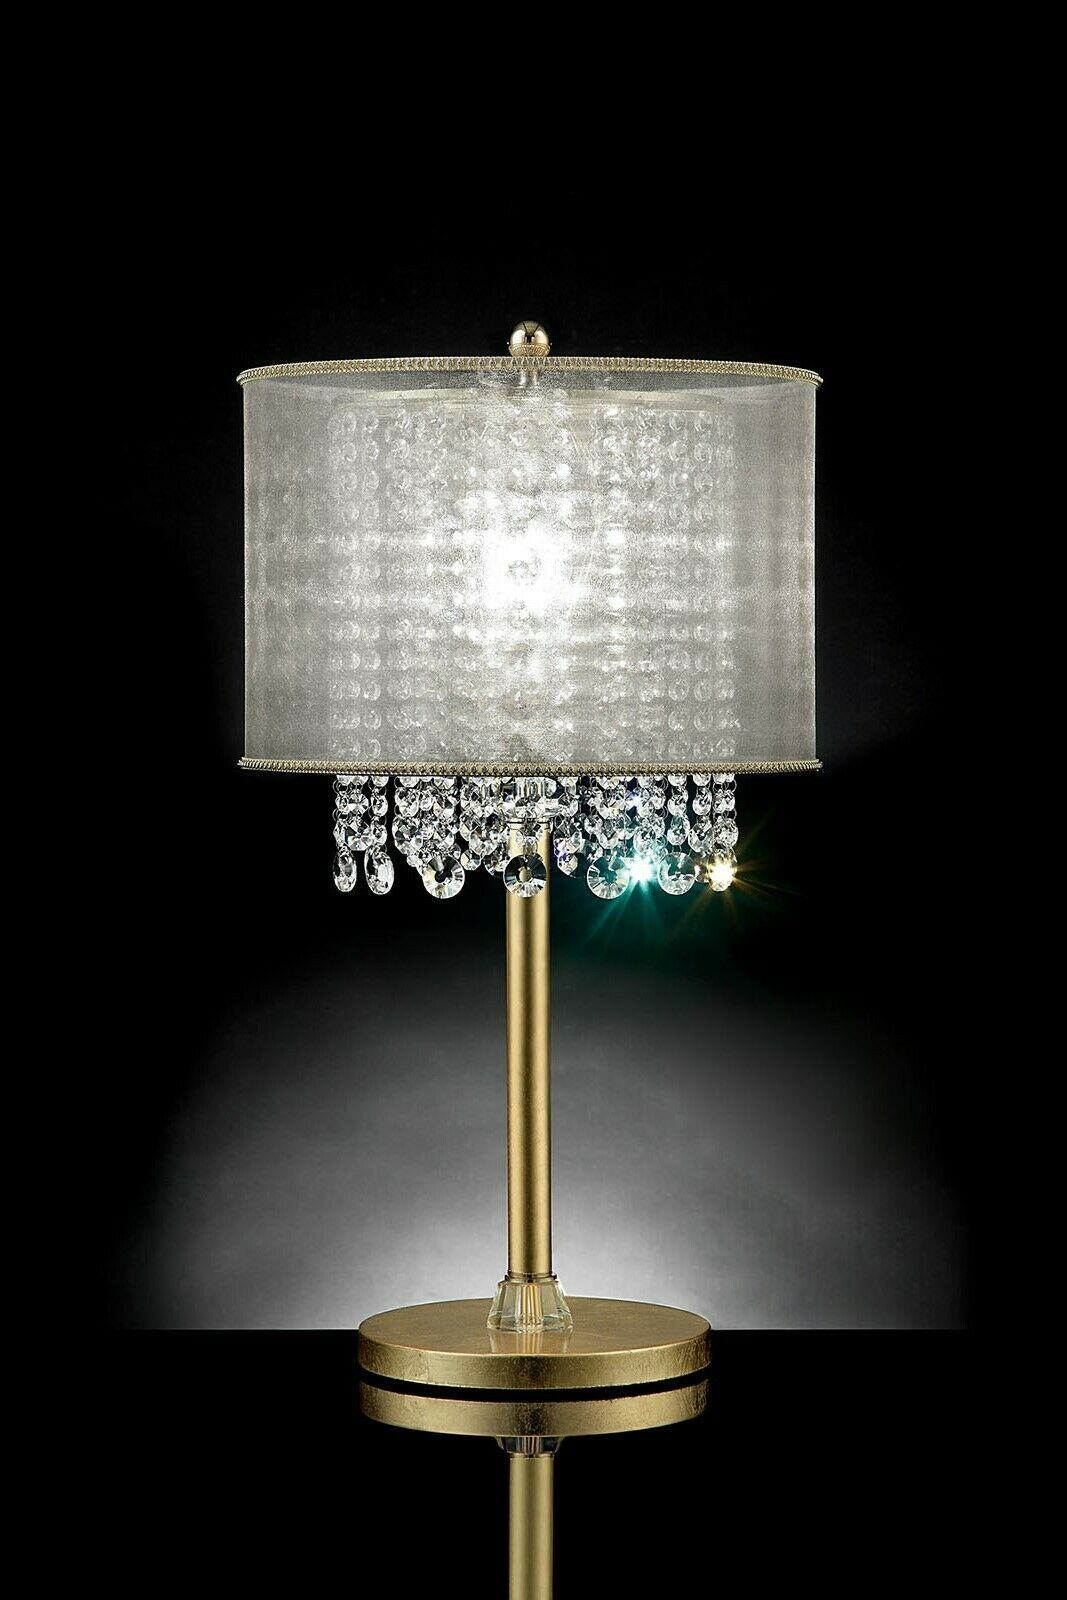 Imported Hanging Crystal Table Lamp Bedroom Home Decor Beautiful